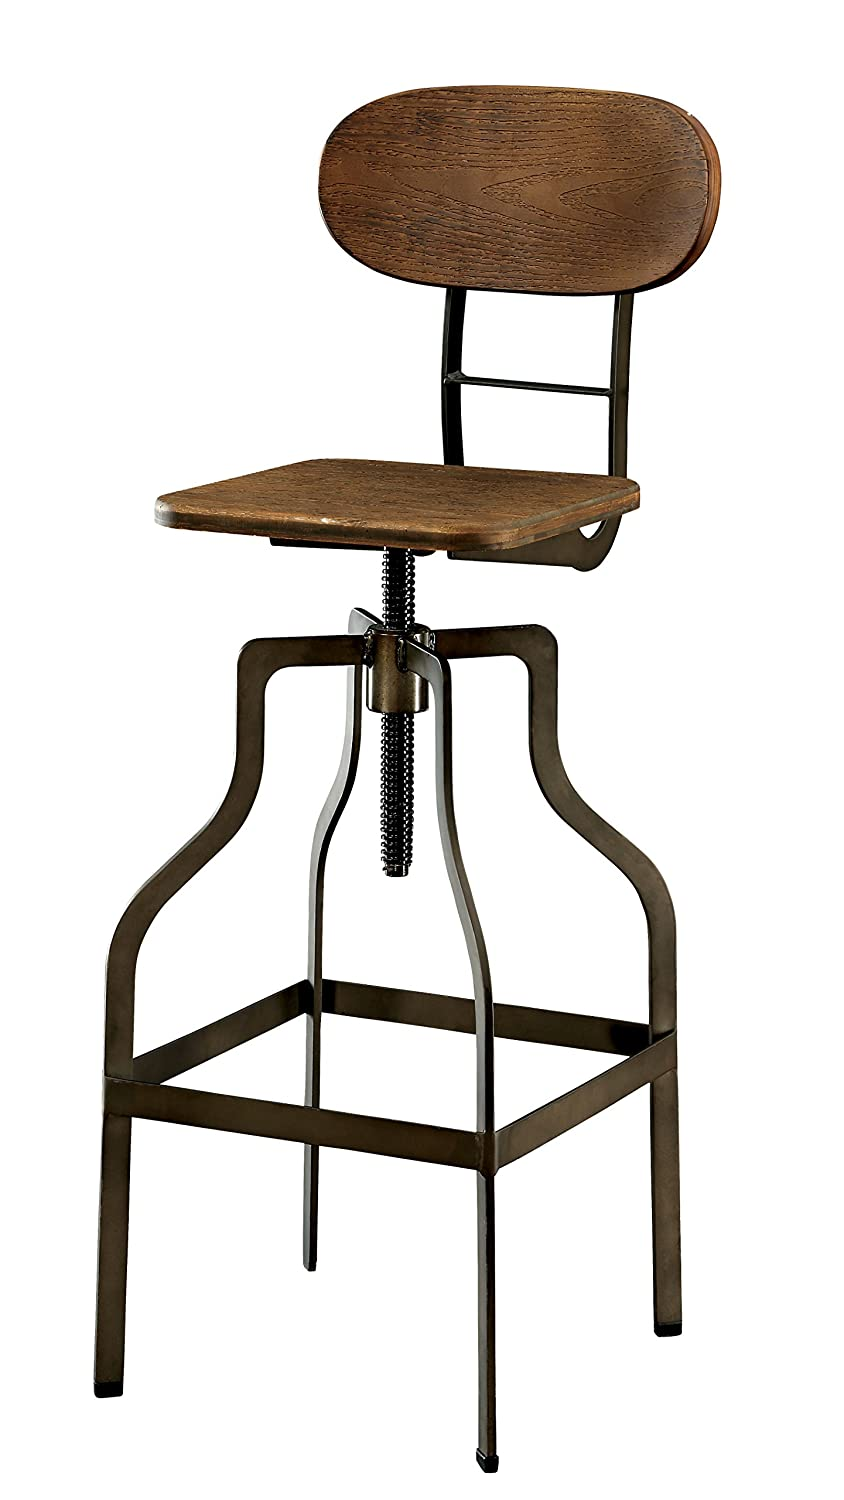 Amazon.com Furniture of America Alavus Industrial Height-Adjustable Swivel Barstool Oak Kitchen u0026 Dining  sc 1 st  Amazon.com & Amazon.com: Furniture of America Alavus Industrial Height ... islam-shia.org